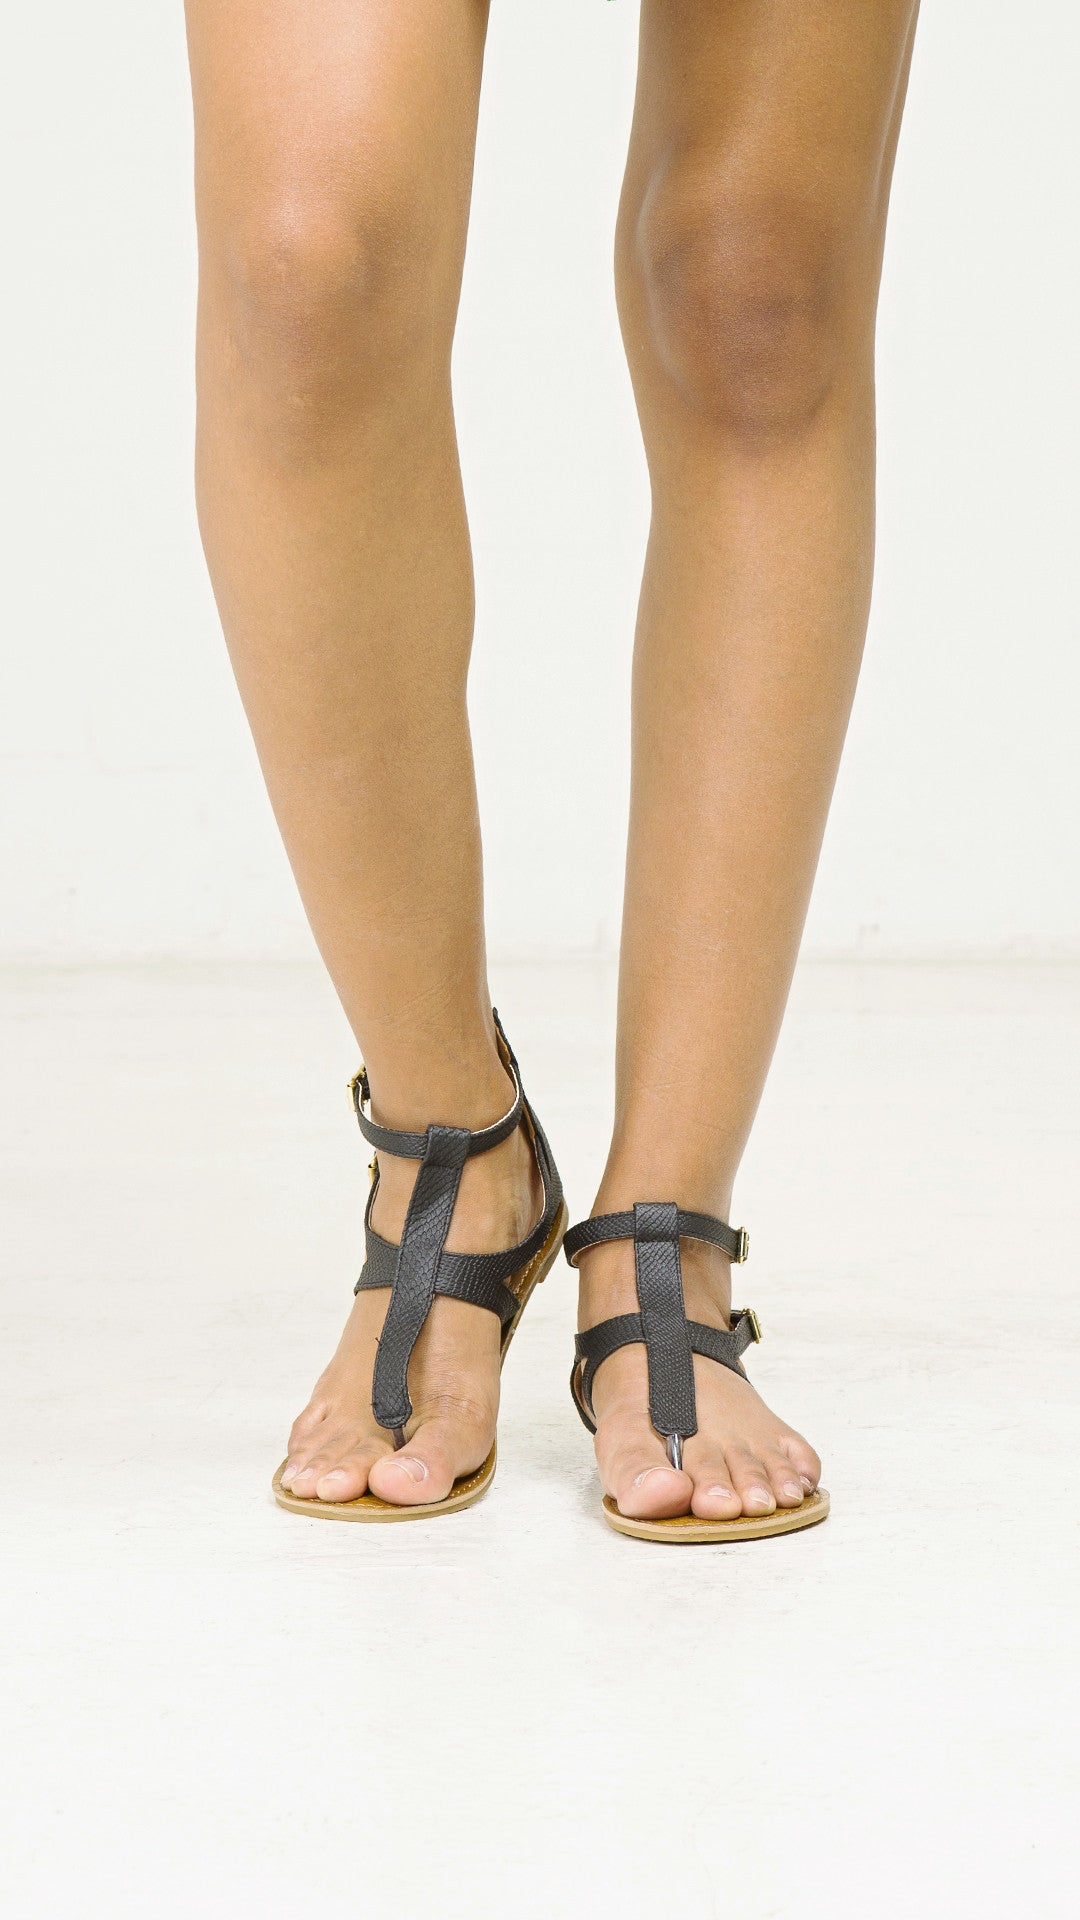 fe9182f07072 Snake Skin Double T- Strap Sandals - ANGL